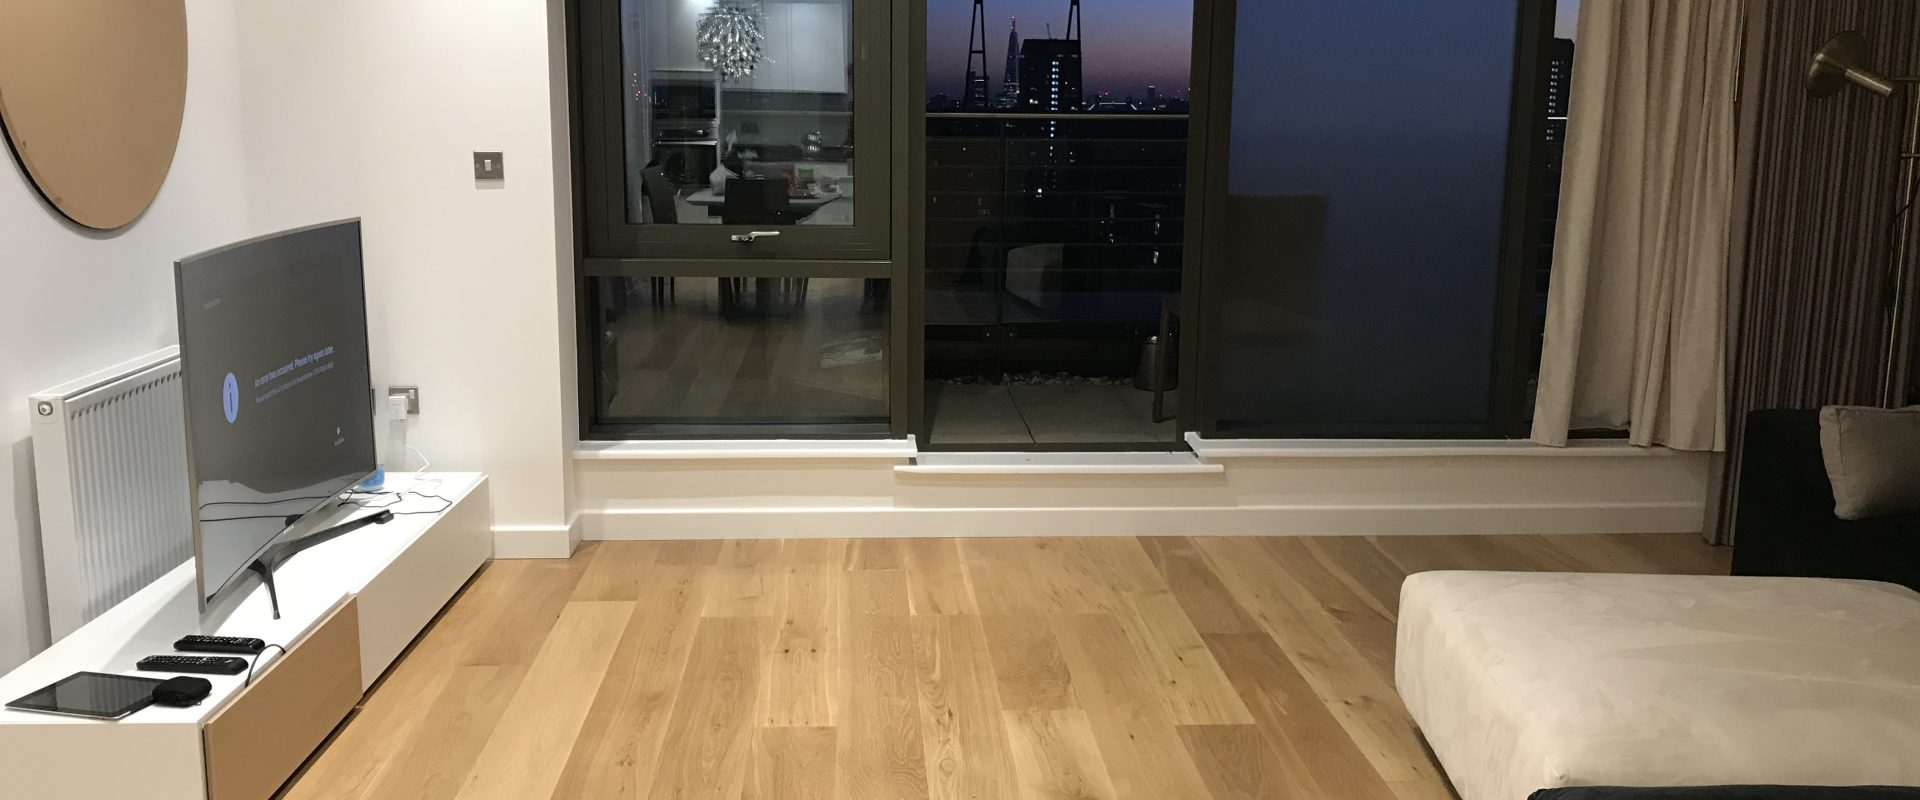 3 Bed Flat With Beatiful View In Canary Warf